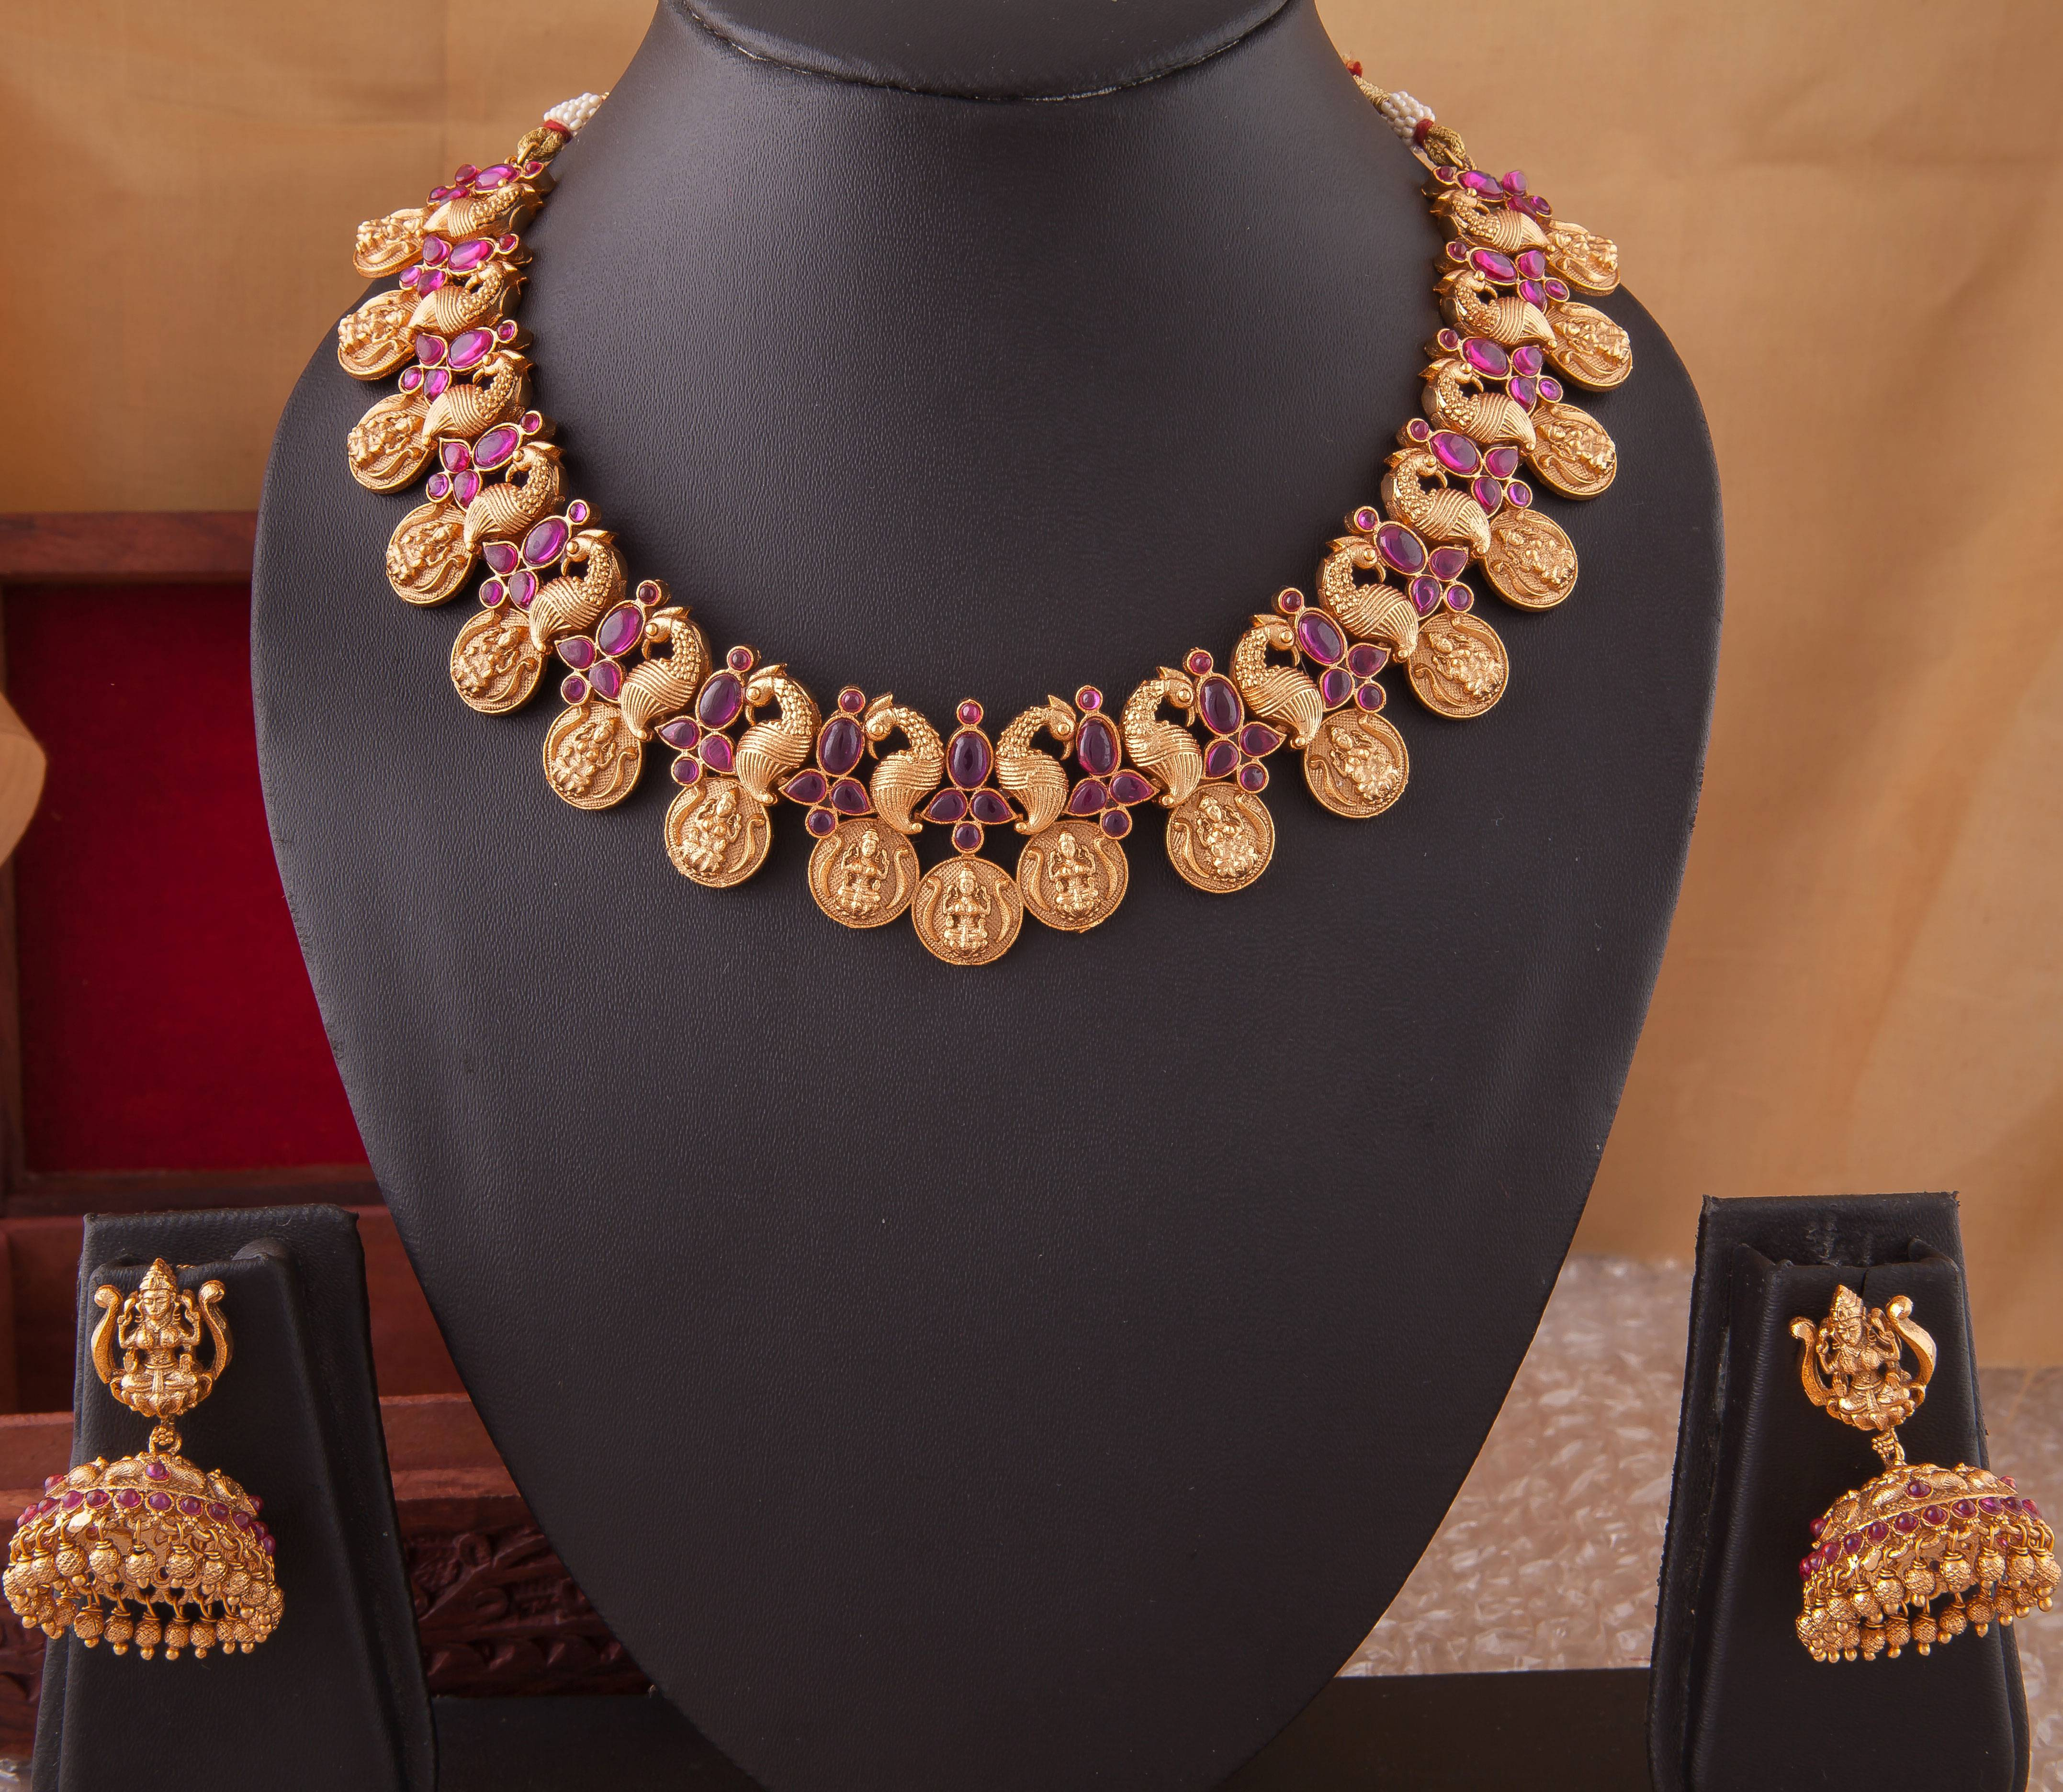 CHETTINAD NECKLACE NKCH - 29 - 05610206